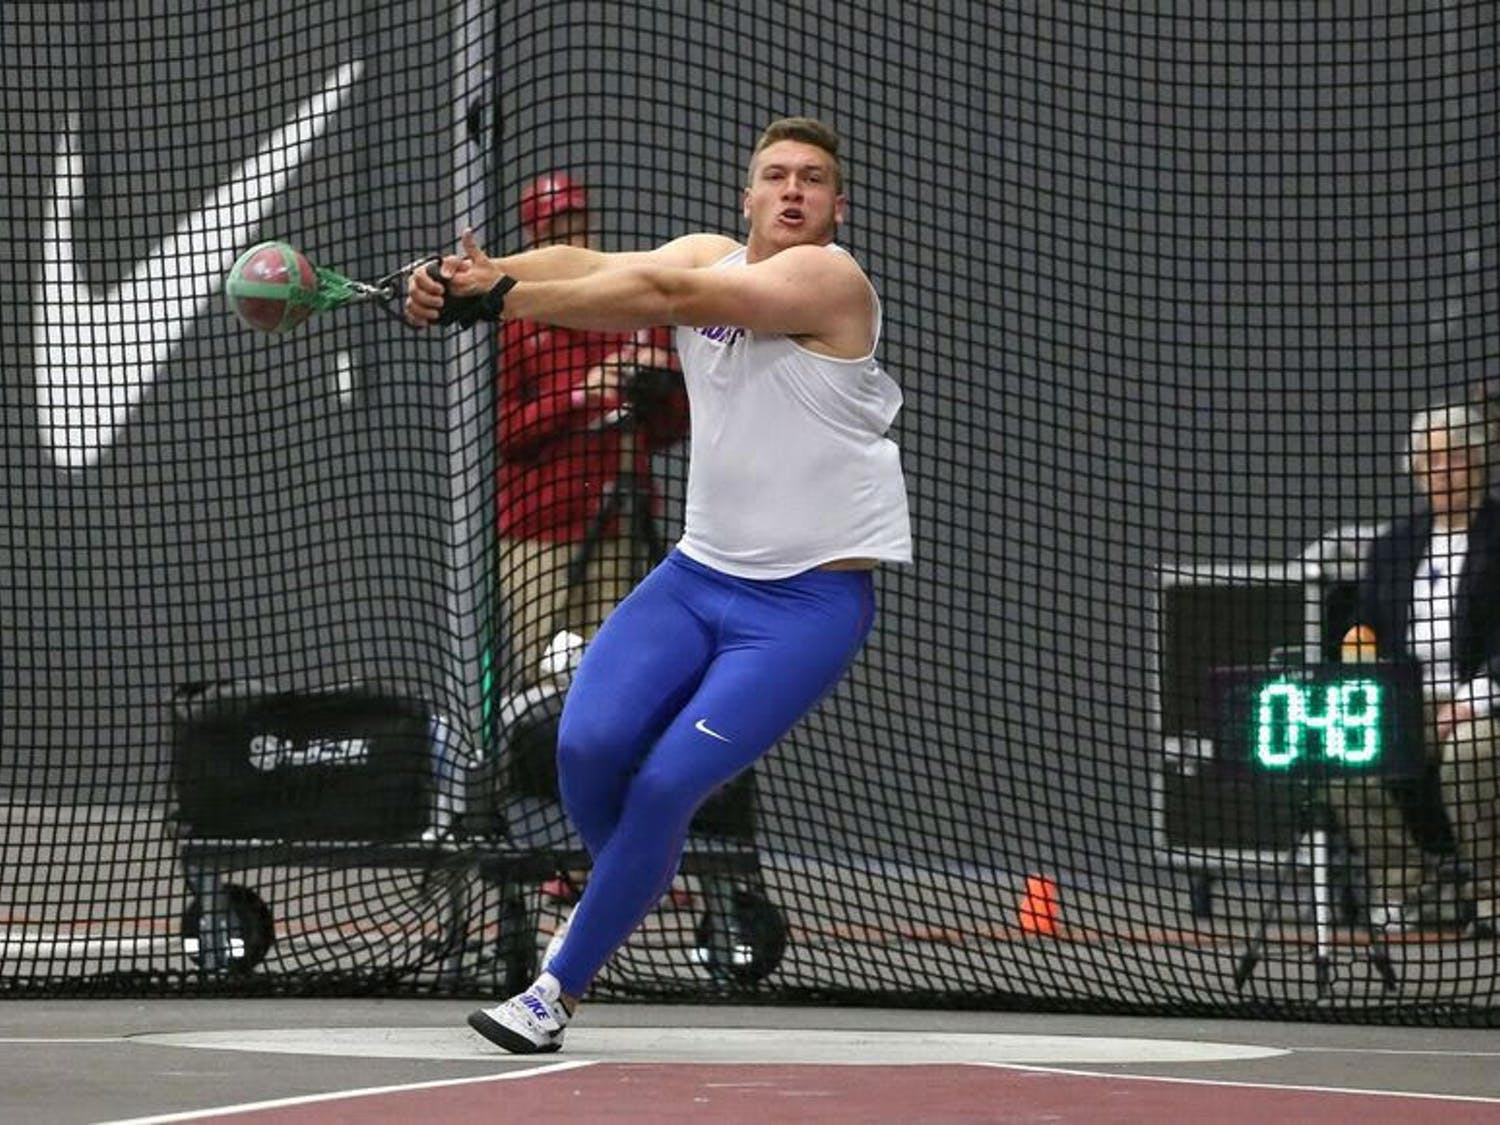 Redshirt senior thrower AJ McFarland set a personal indoor record for this second time this season at the Virginia Tech Elite Invitational. McFarland's22.58-meter throw was also his sixth time breaking the school record.